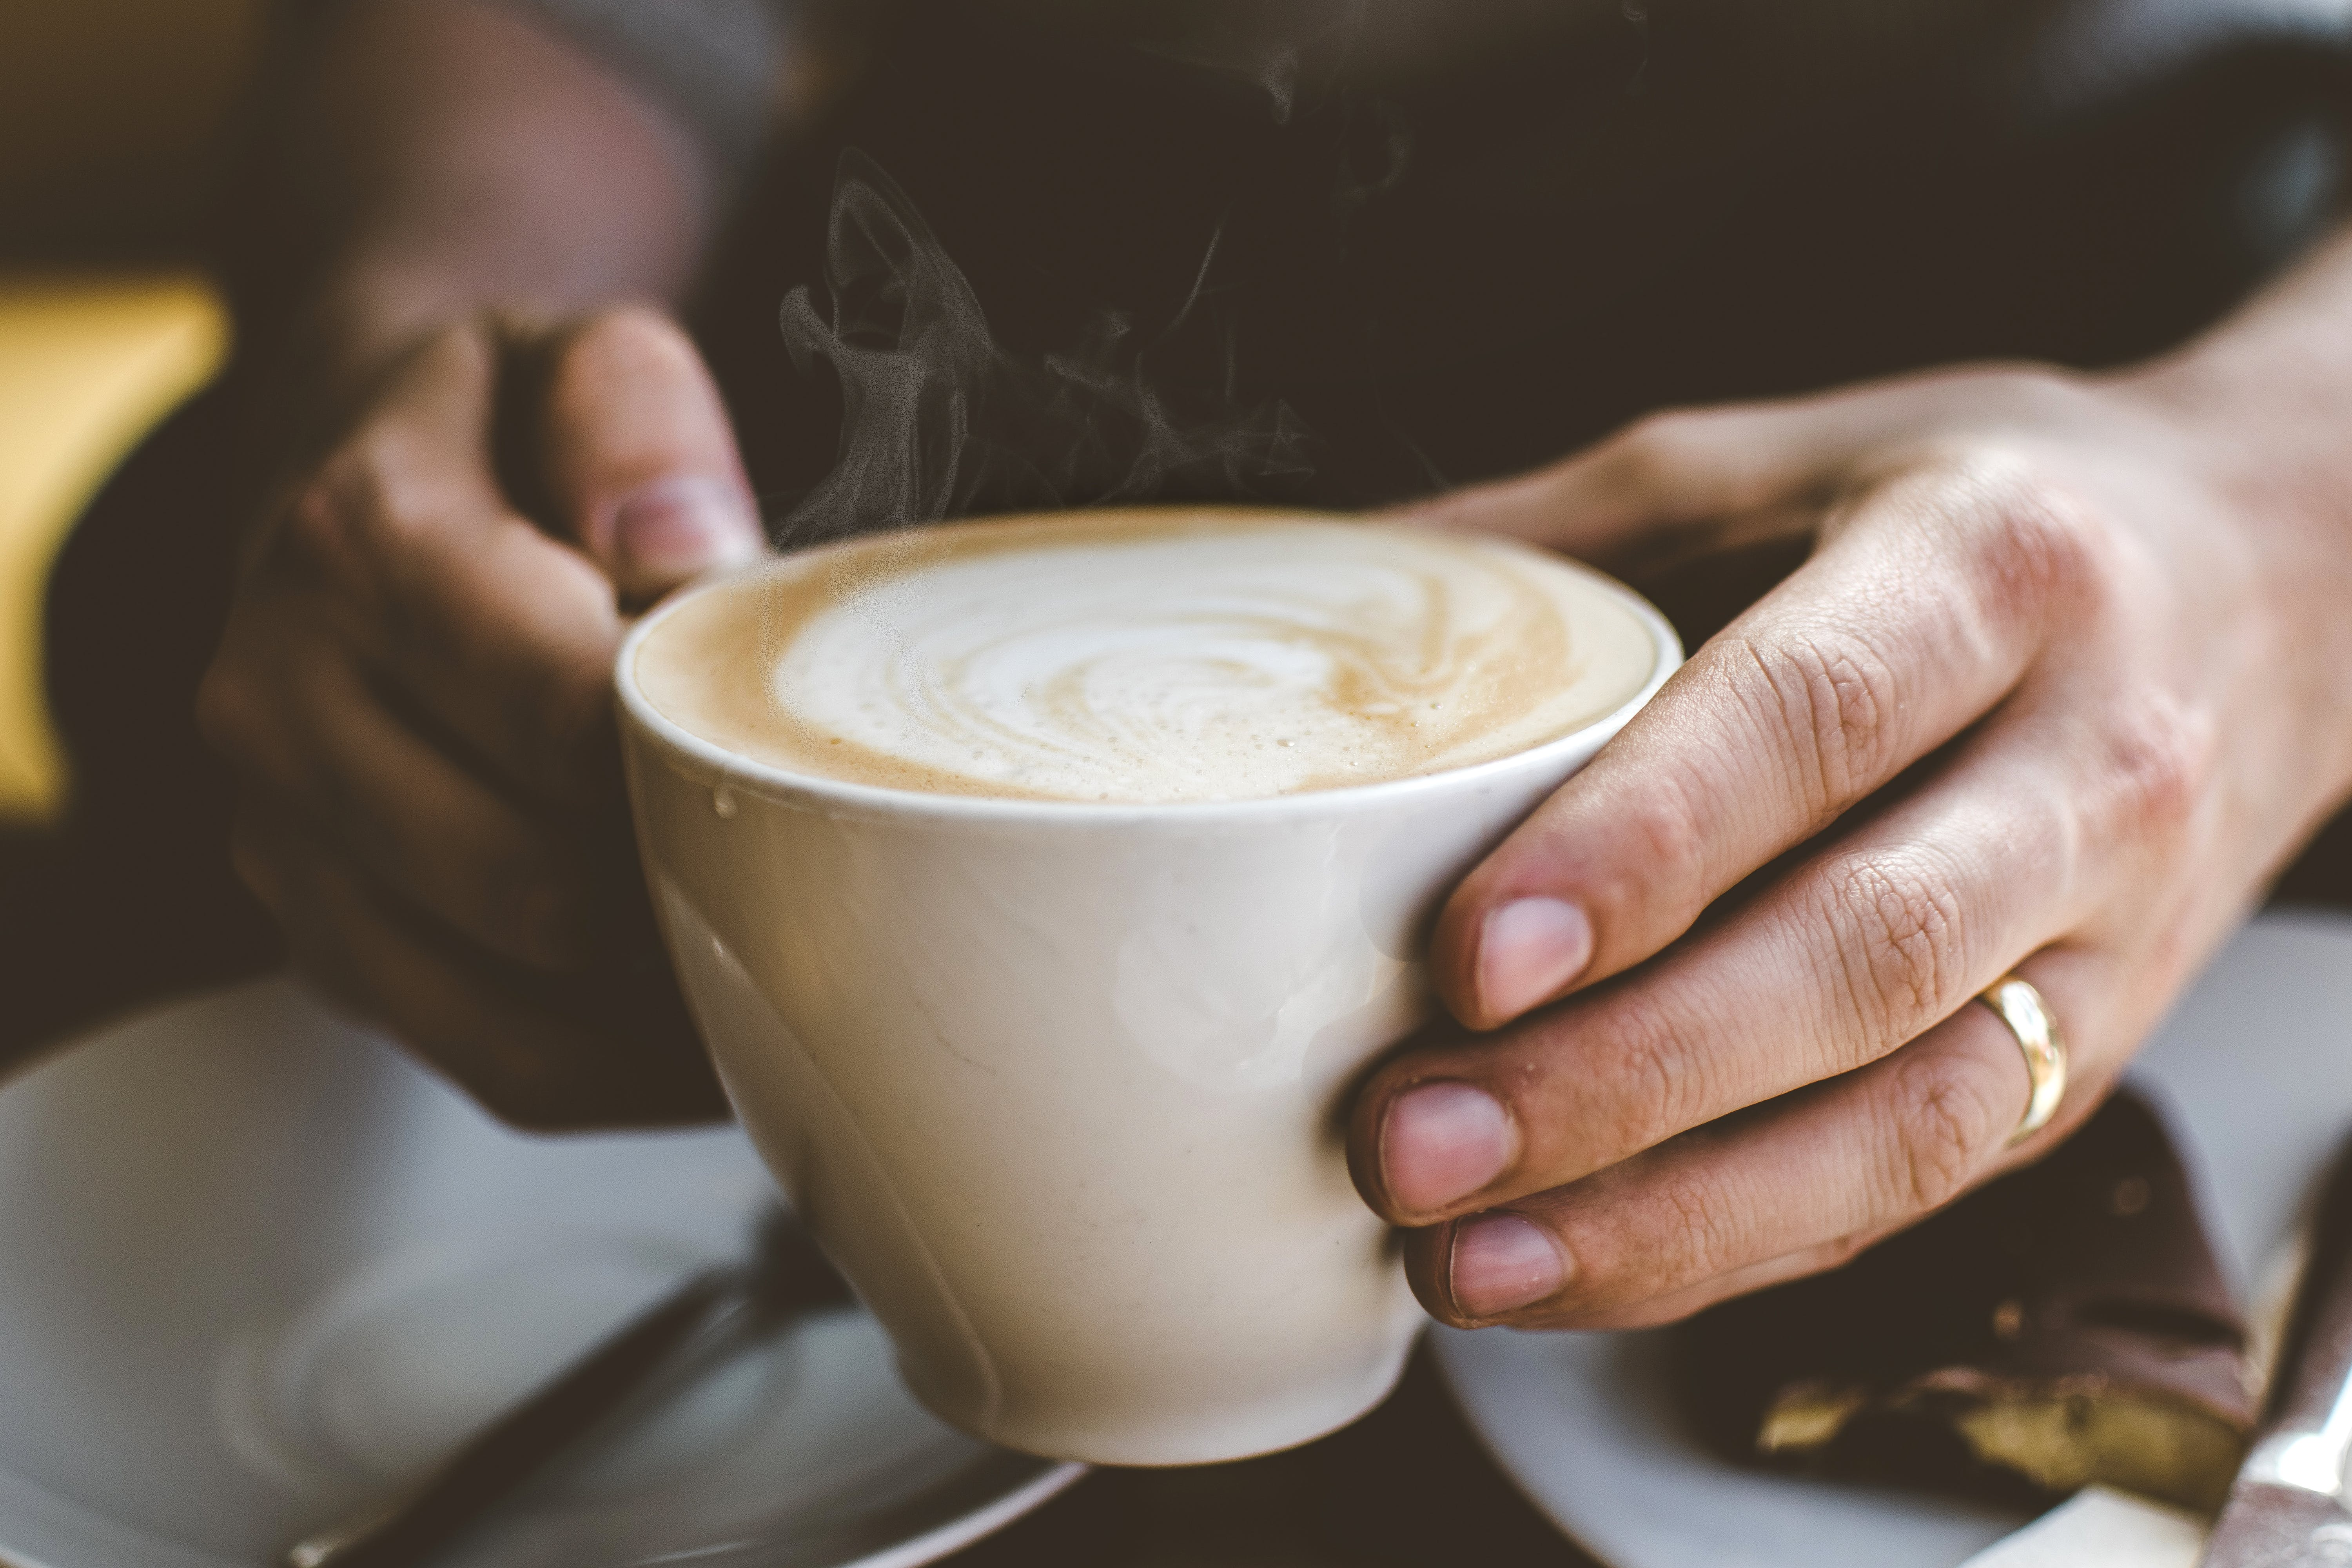 Close-Up Photo of Person Holding Cup of Coffee